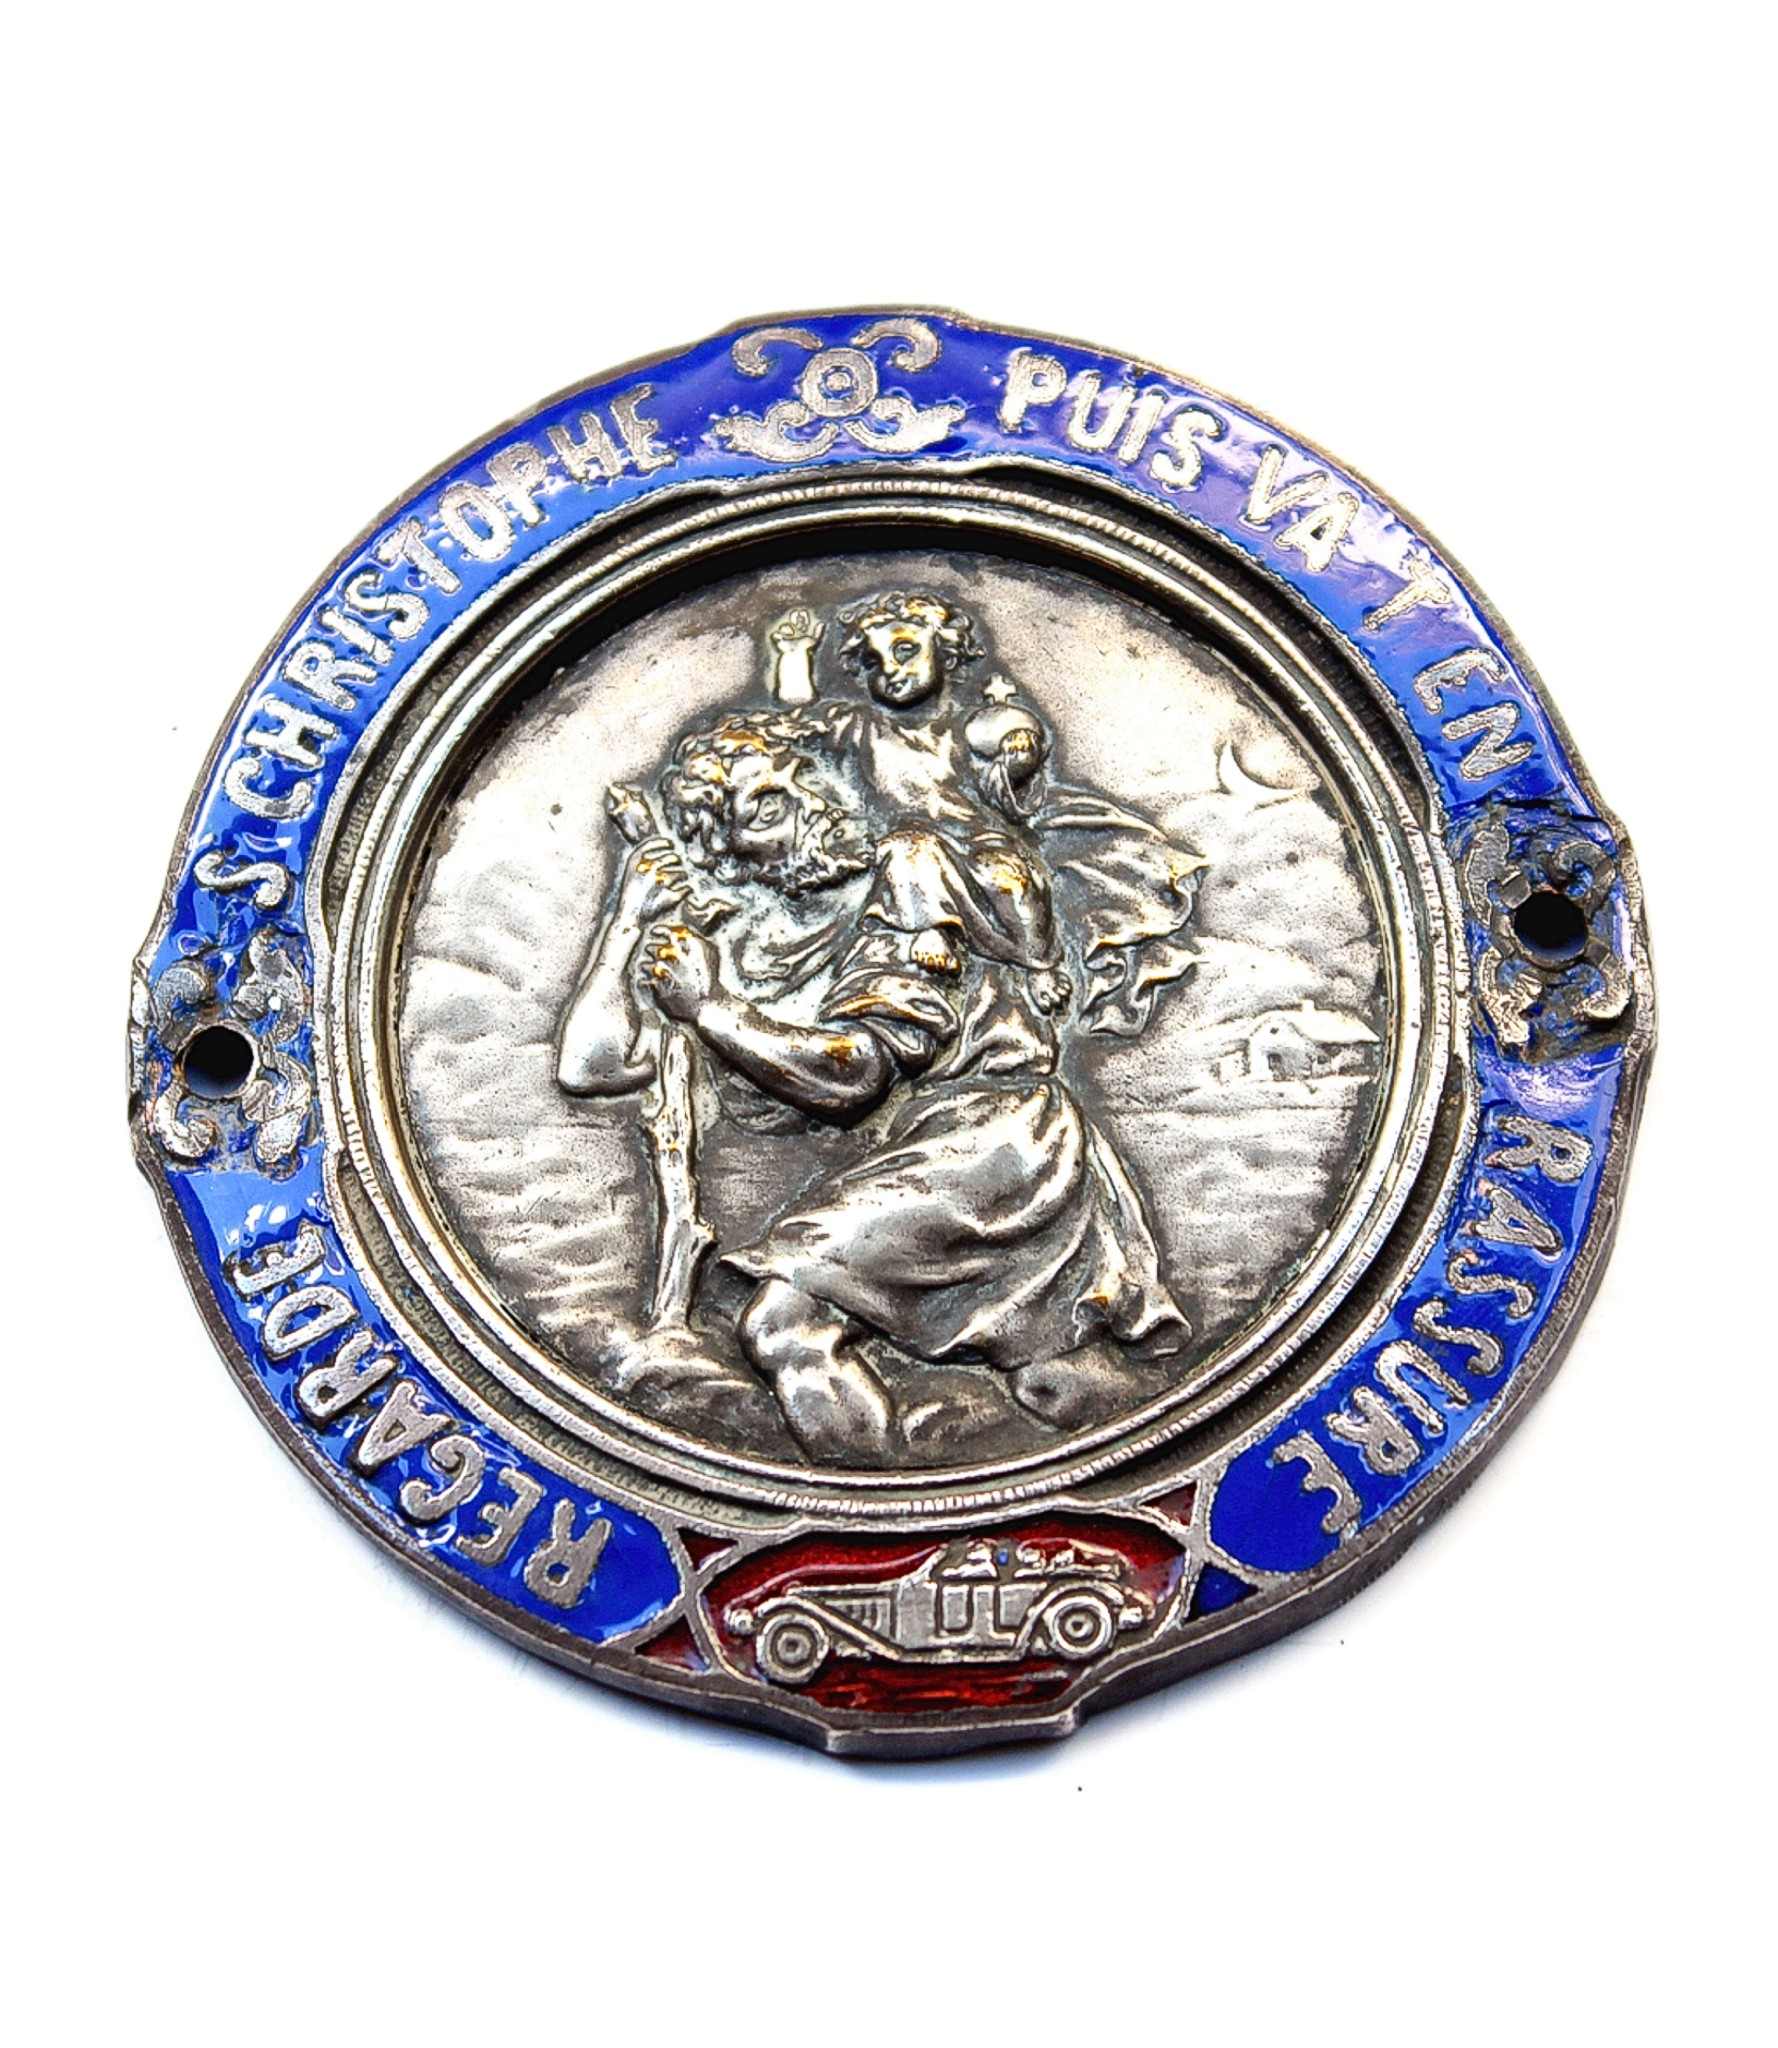 Highly decorated St.Christopher dashboard badge